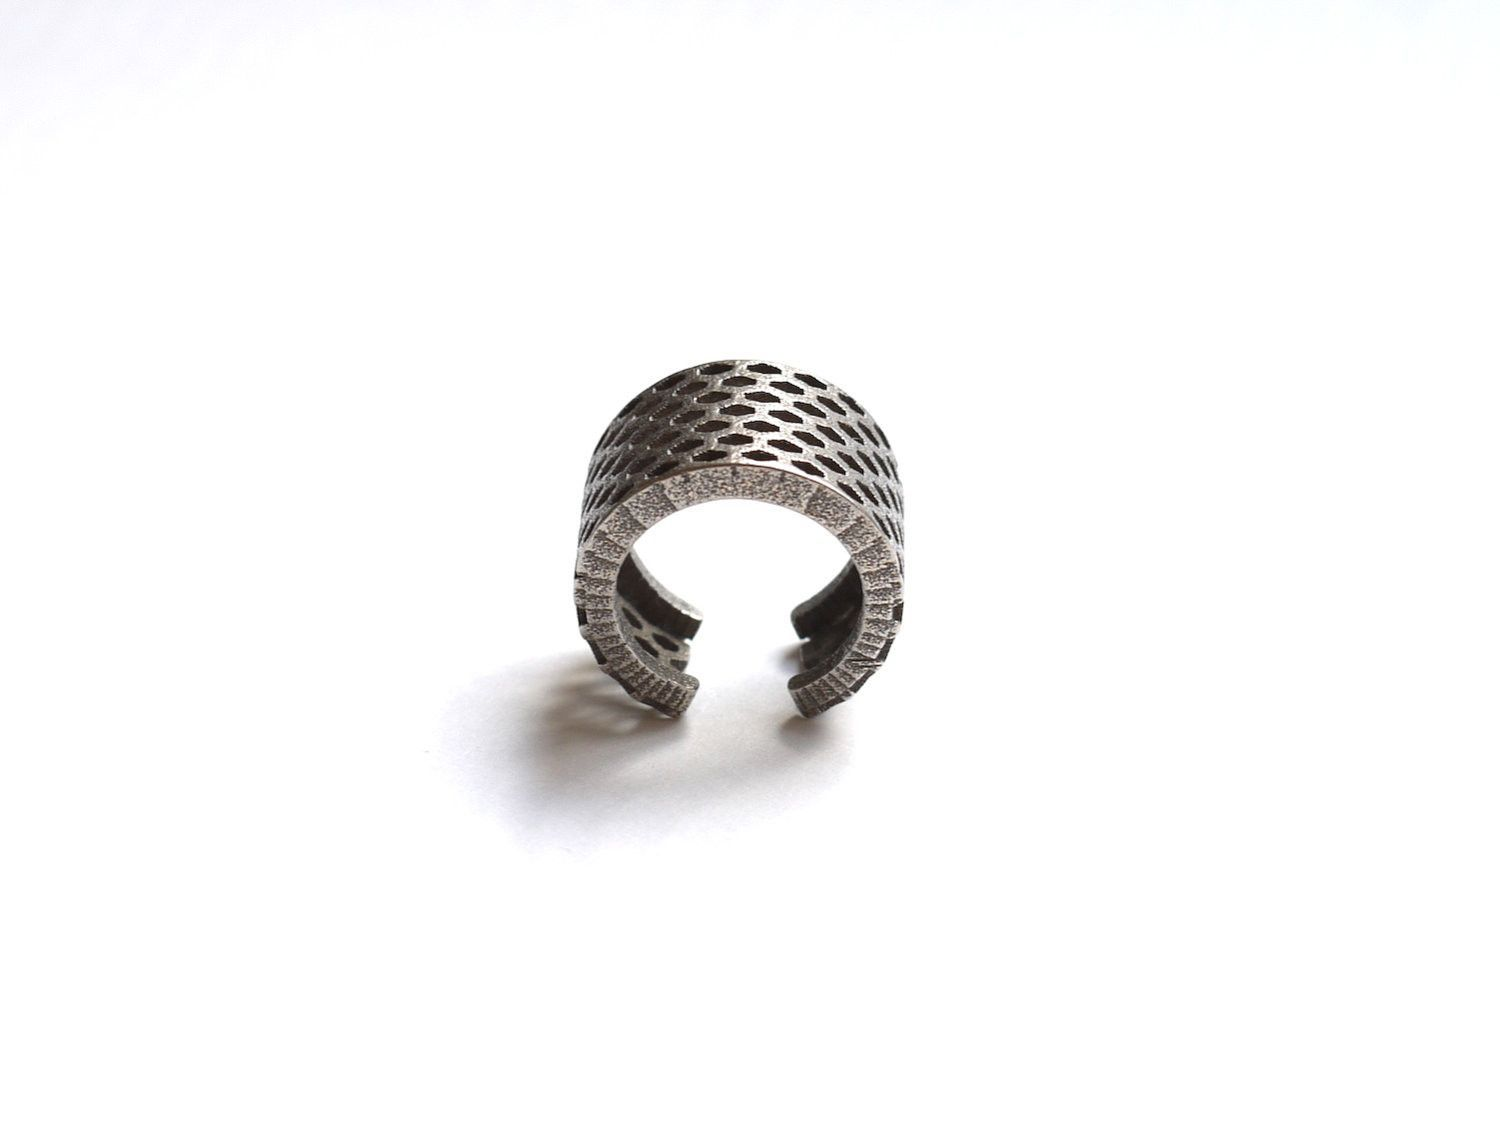 3d printed Perforated Elongated Honeycomb Ring in stainless steel